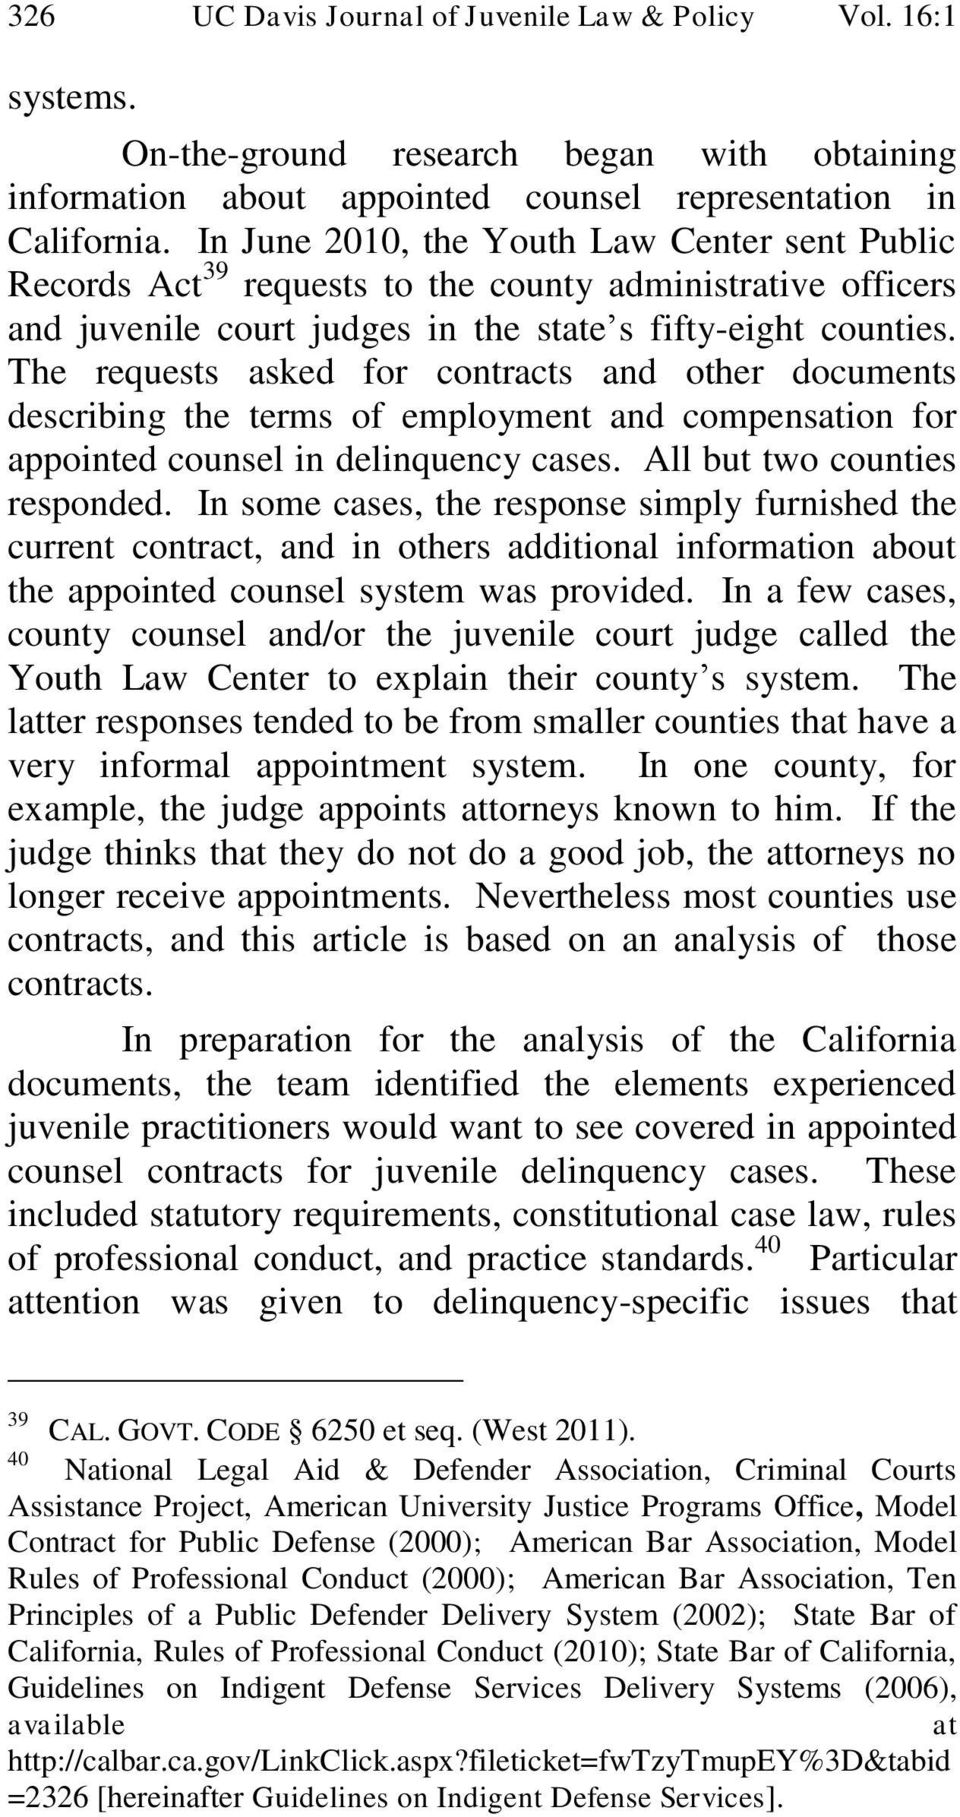 The requests asked for contracts and other documents describing the terms of employment and compensation for appointed counsel in delinquency cases. All but two counties responded.